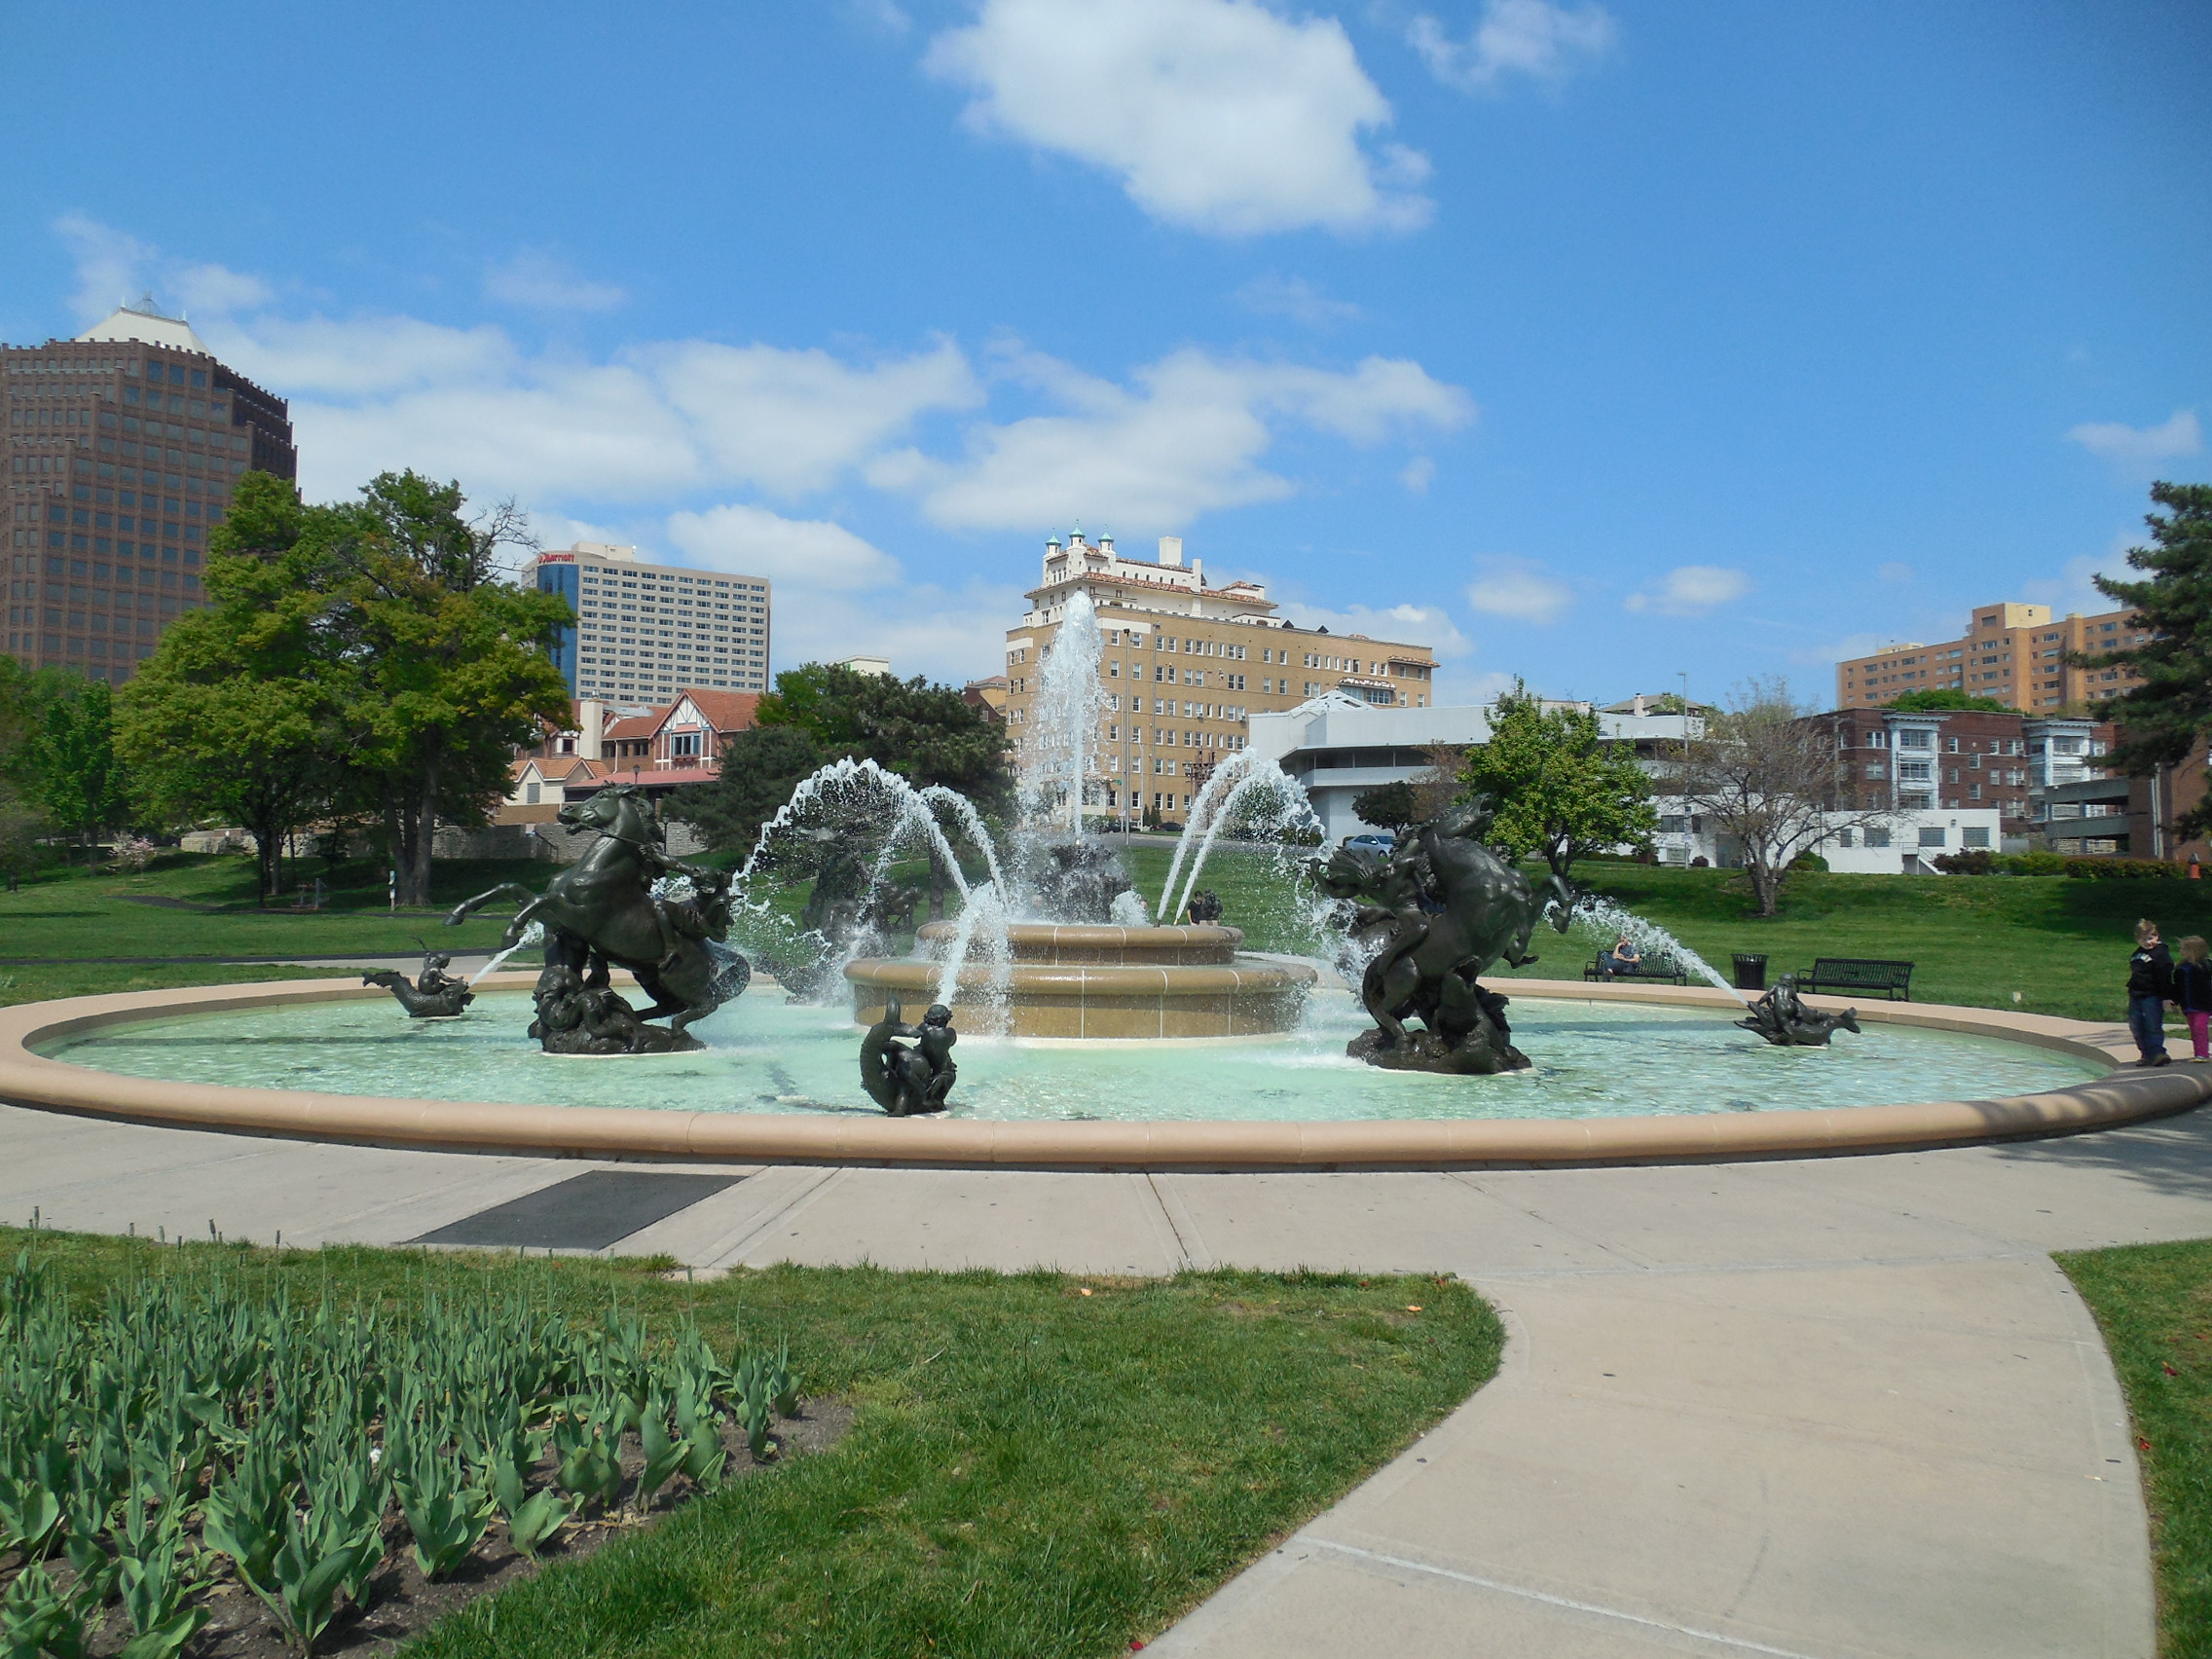 Singles in fountain city in Find Real Estate, Homes for Sale, Apartments & Houses for Rent - ®